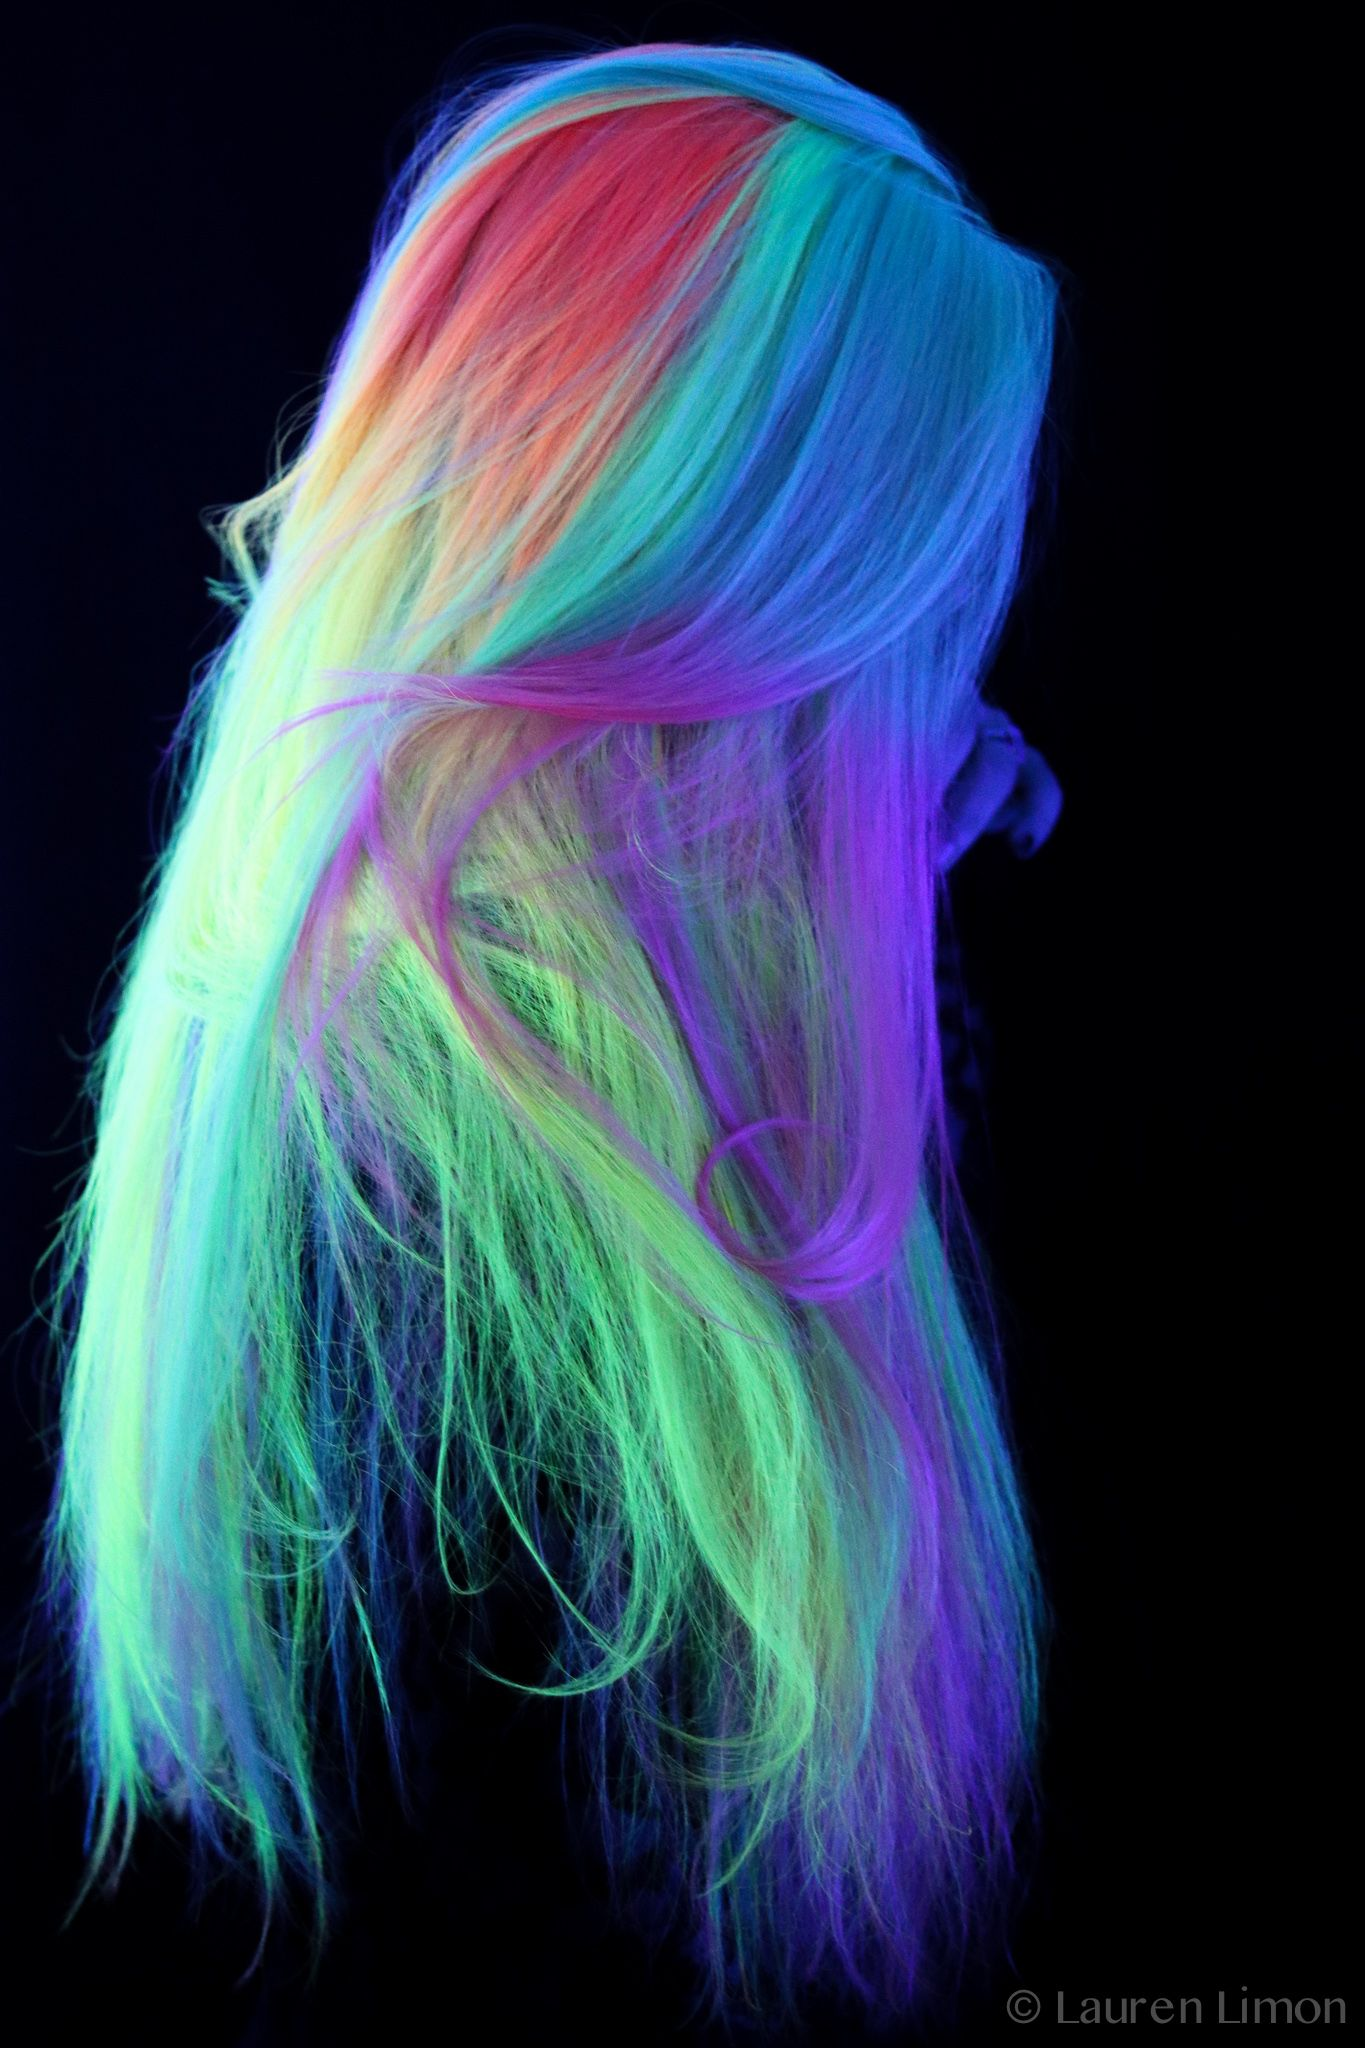 Blacklight Neon Hair Done With The New Kenra Neons Photo By Lauren Limon Rainbow Tropical Day Glo Not Quite Glow In Dark But Uv Reactive